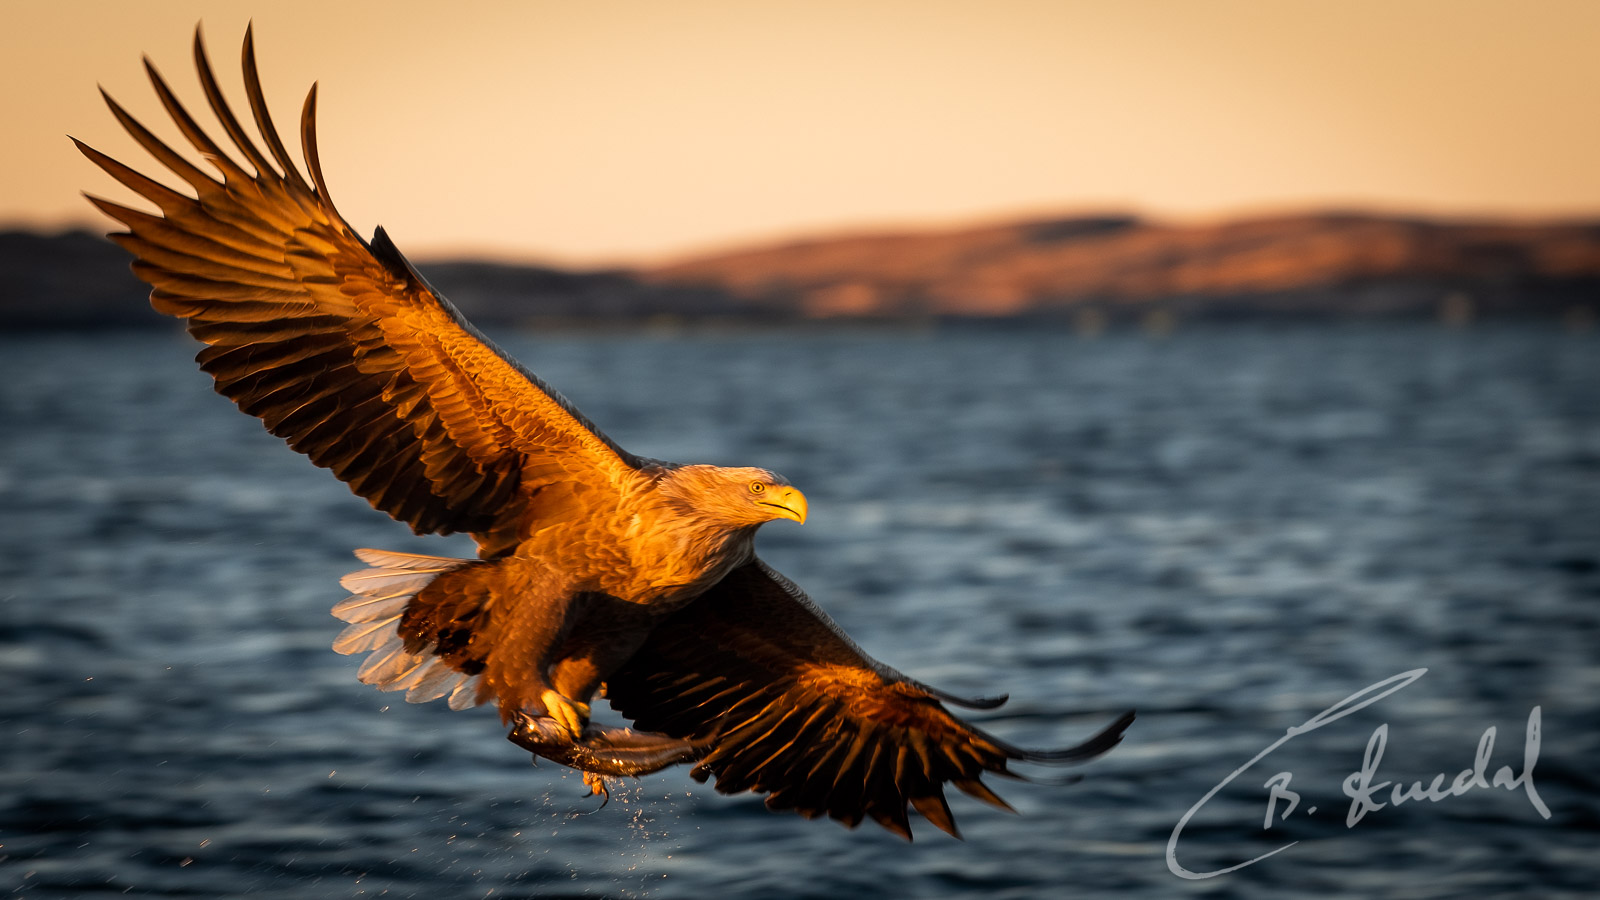 White-tailed eagle in gold